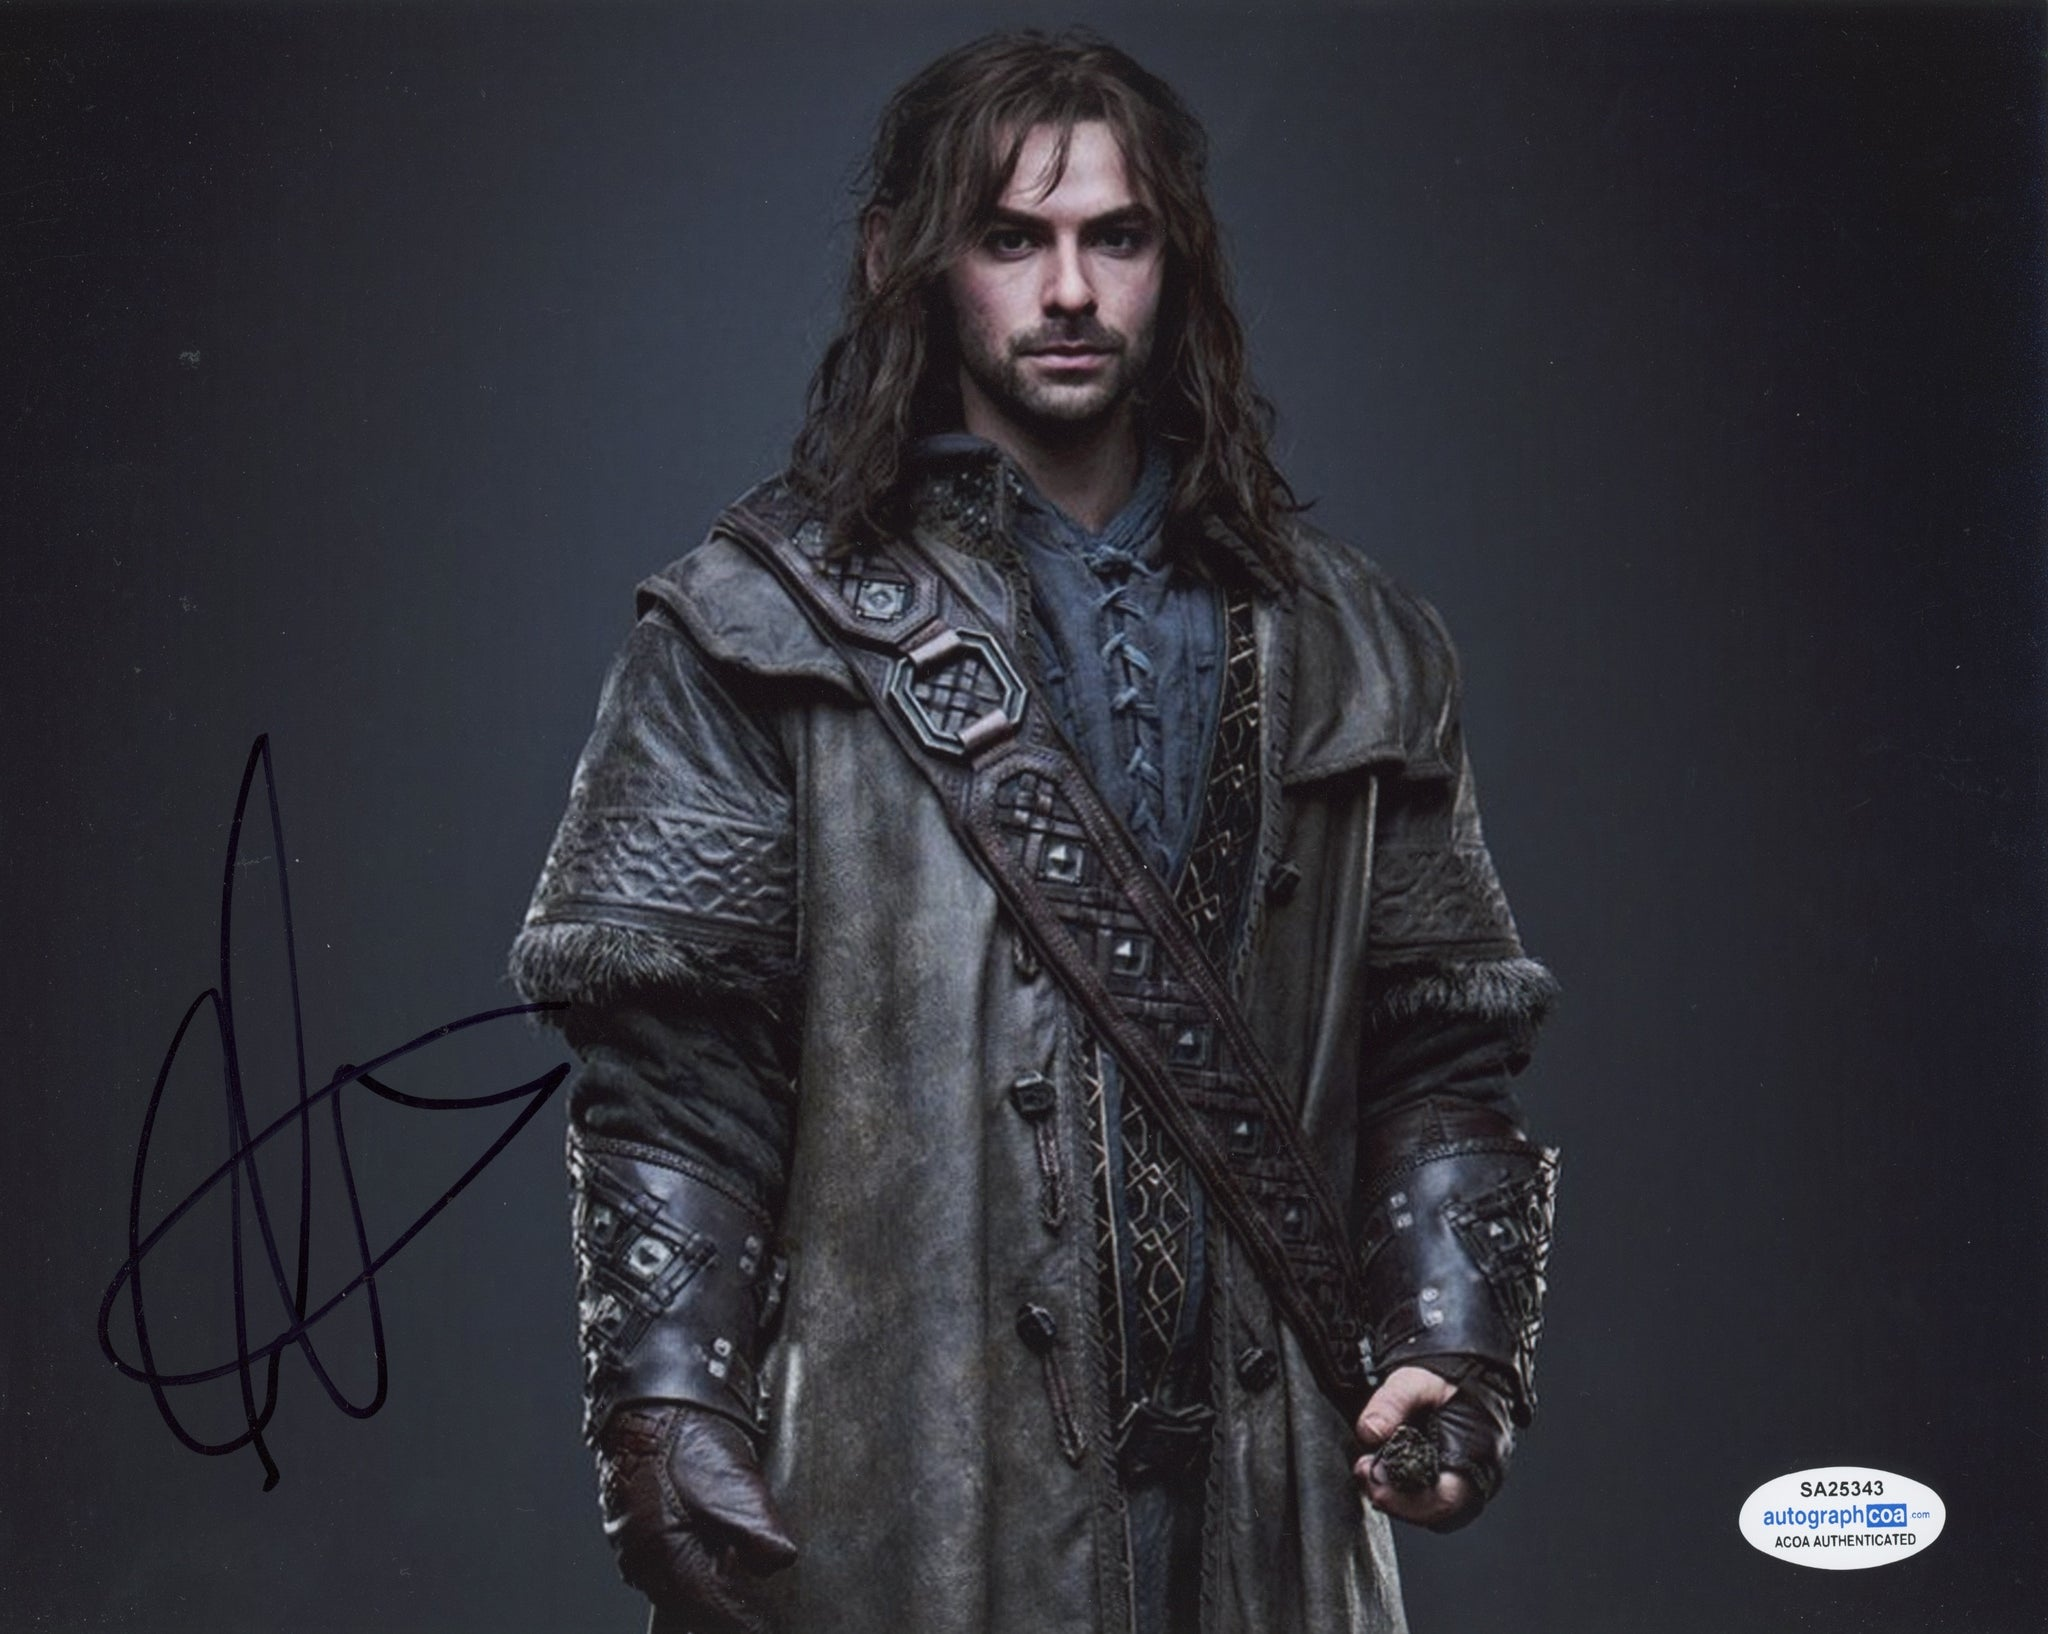 Aidan Turner The Hobbit Signed Autograph 8x10 Photo ACOA #9